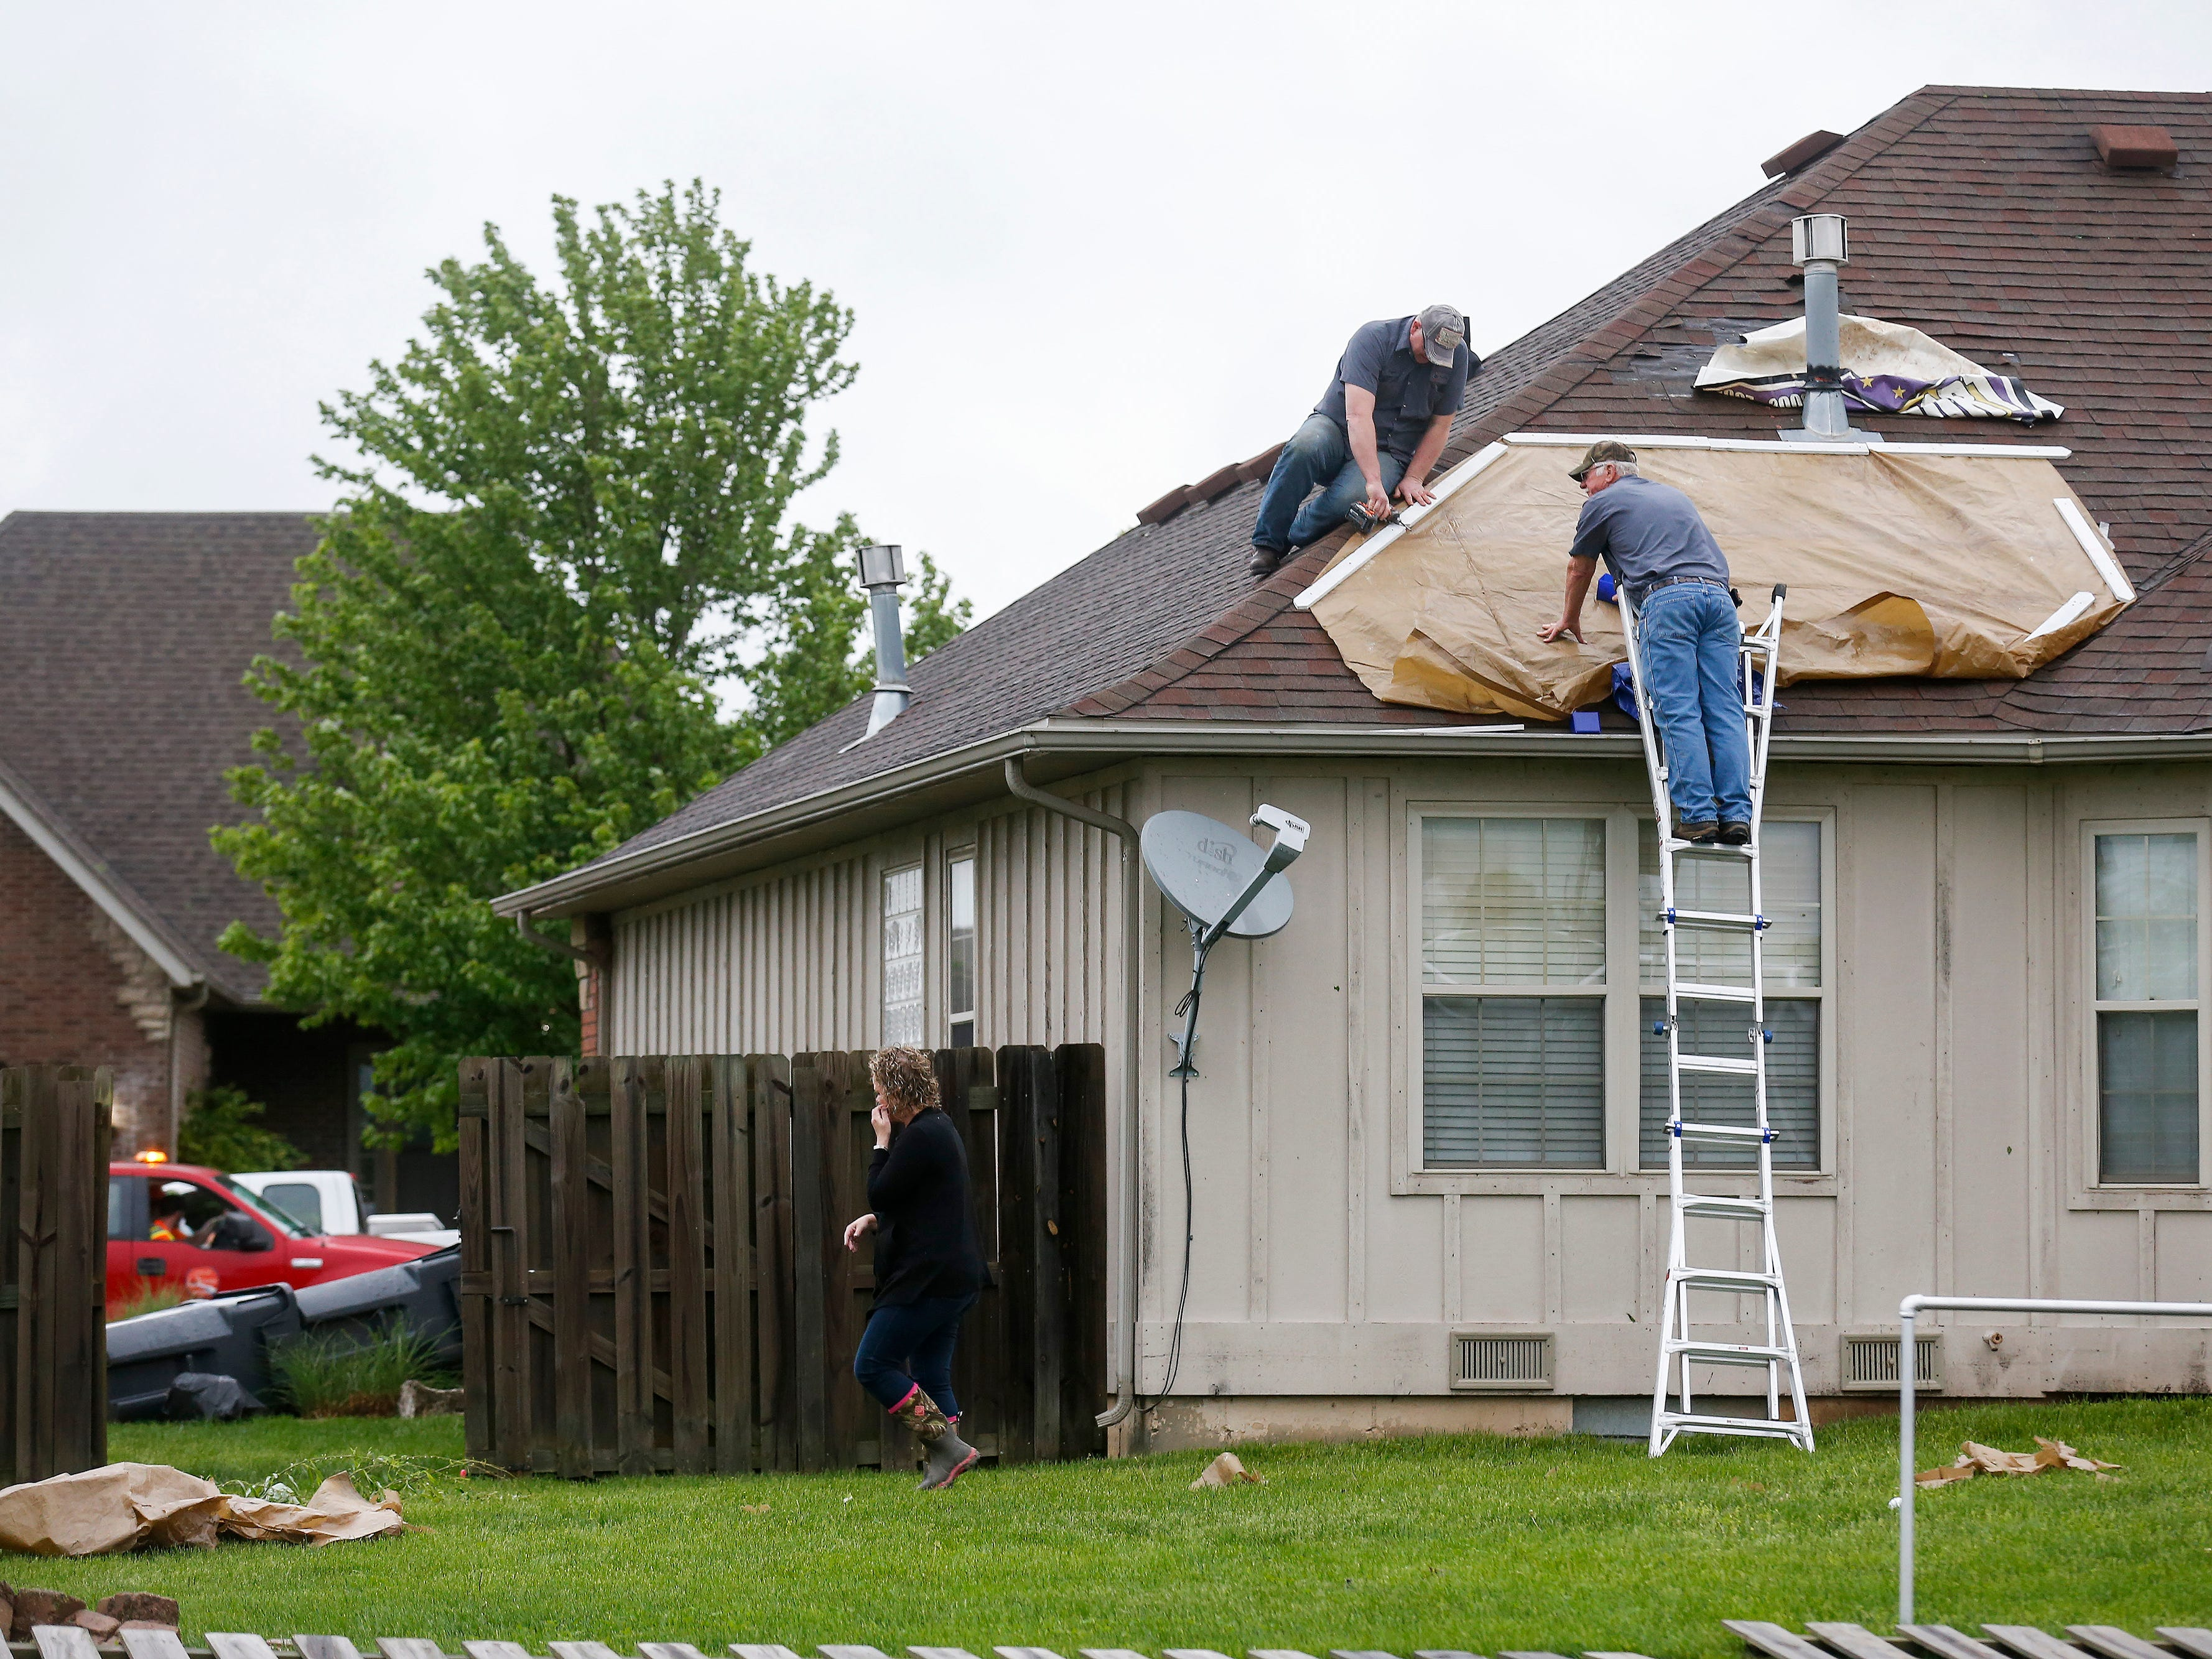 People put a tarp on a roof Wednesday in the Waterford neighborhood. A likely tornado moved through the Ozark Tuesday April 30, 2019 and caused extensive damage.